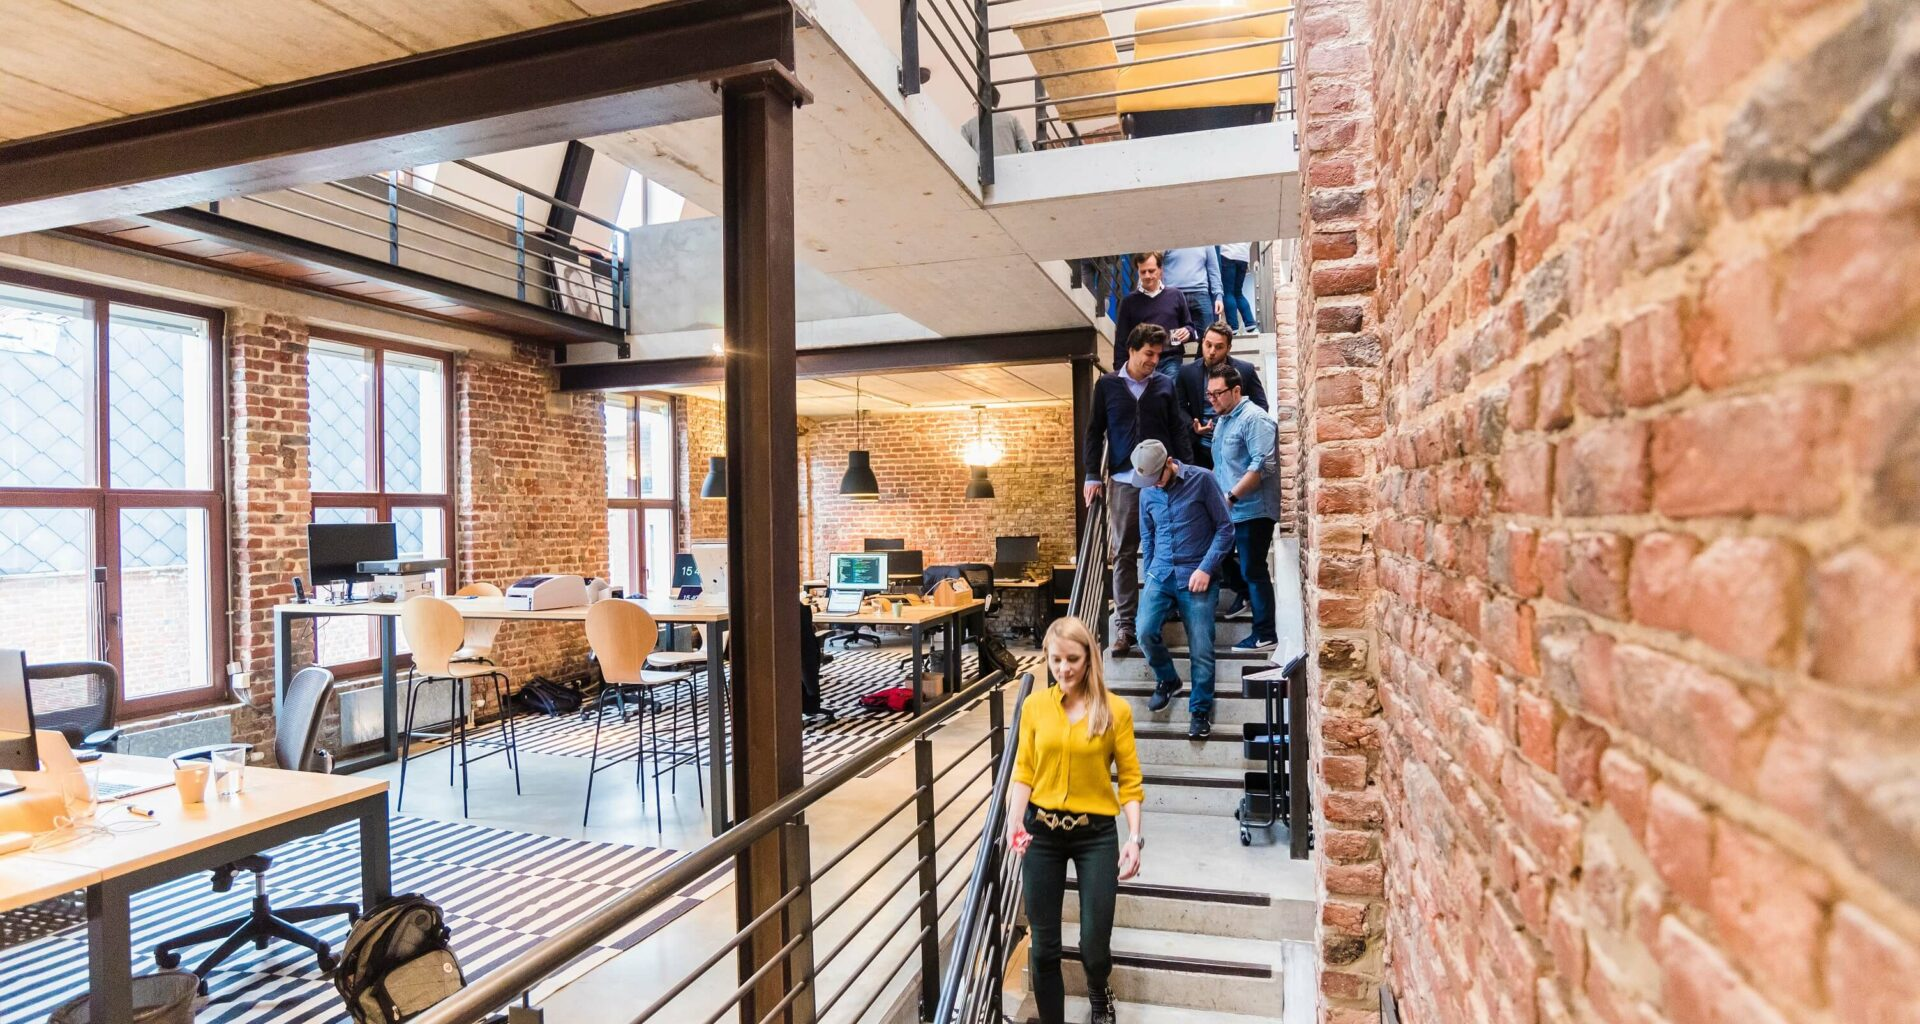 These 10 Coworking Spaces in Jaipur Will Give You a Productivity Boost and Inspiration to Get Things Done